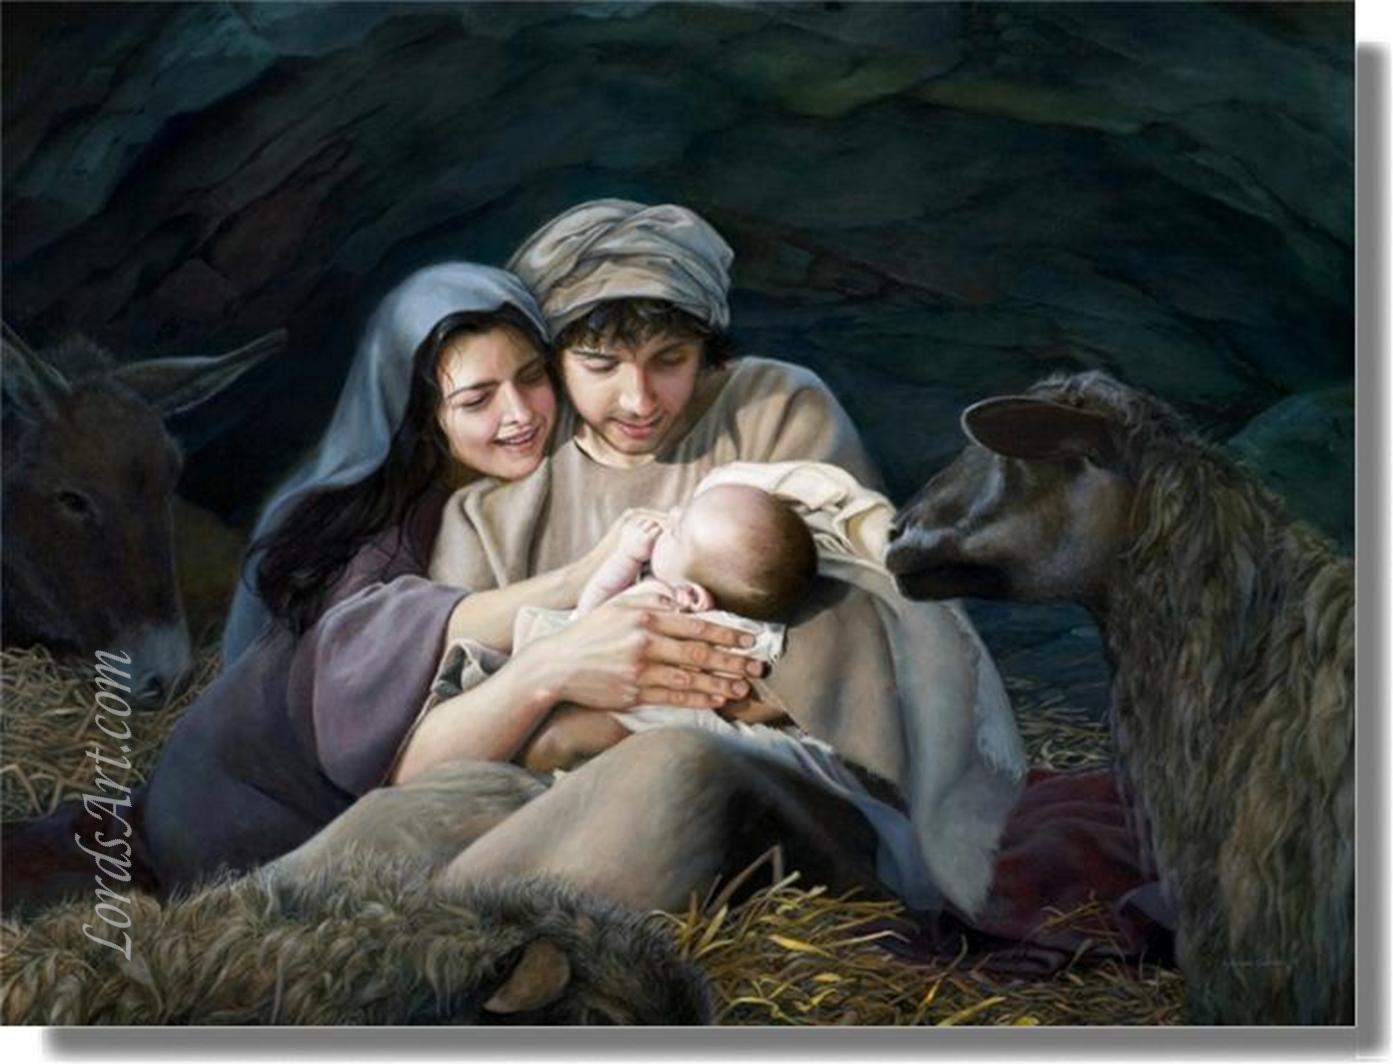 Jesus being born pictures Brain Anatomy, Anatomy of the Human Brain - Mayfield Clinic